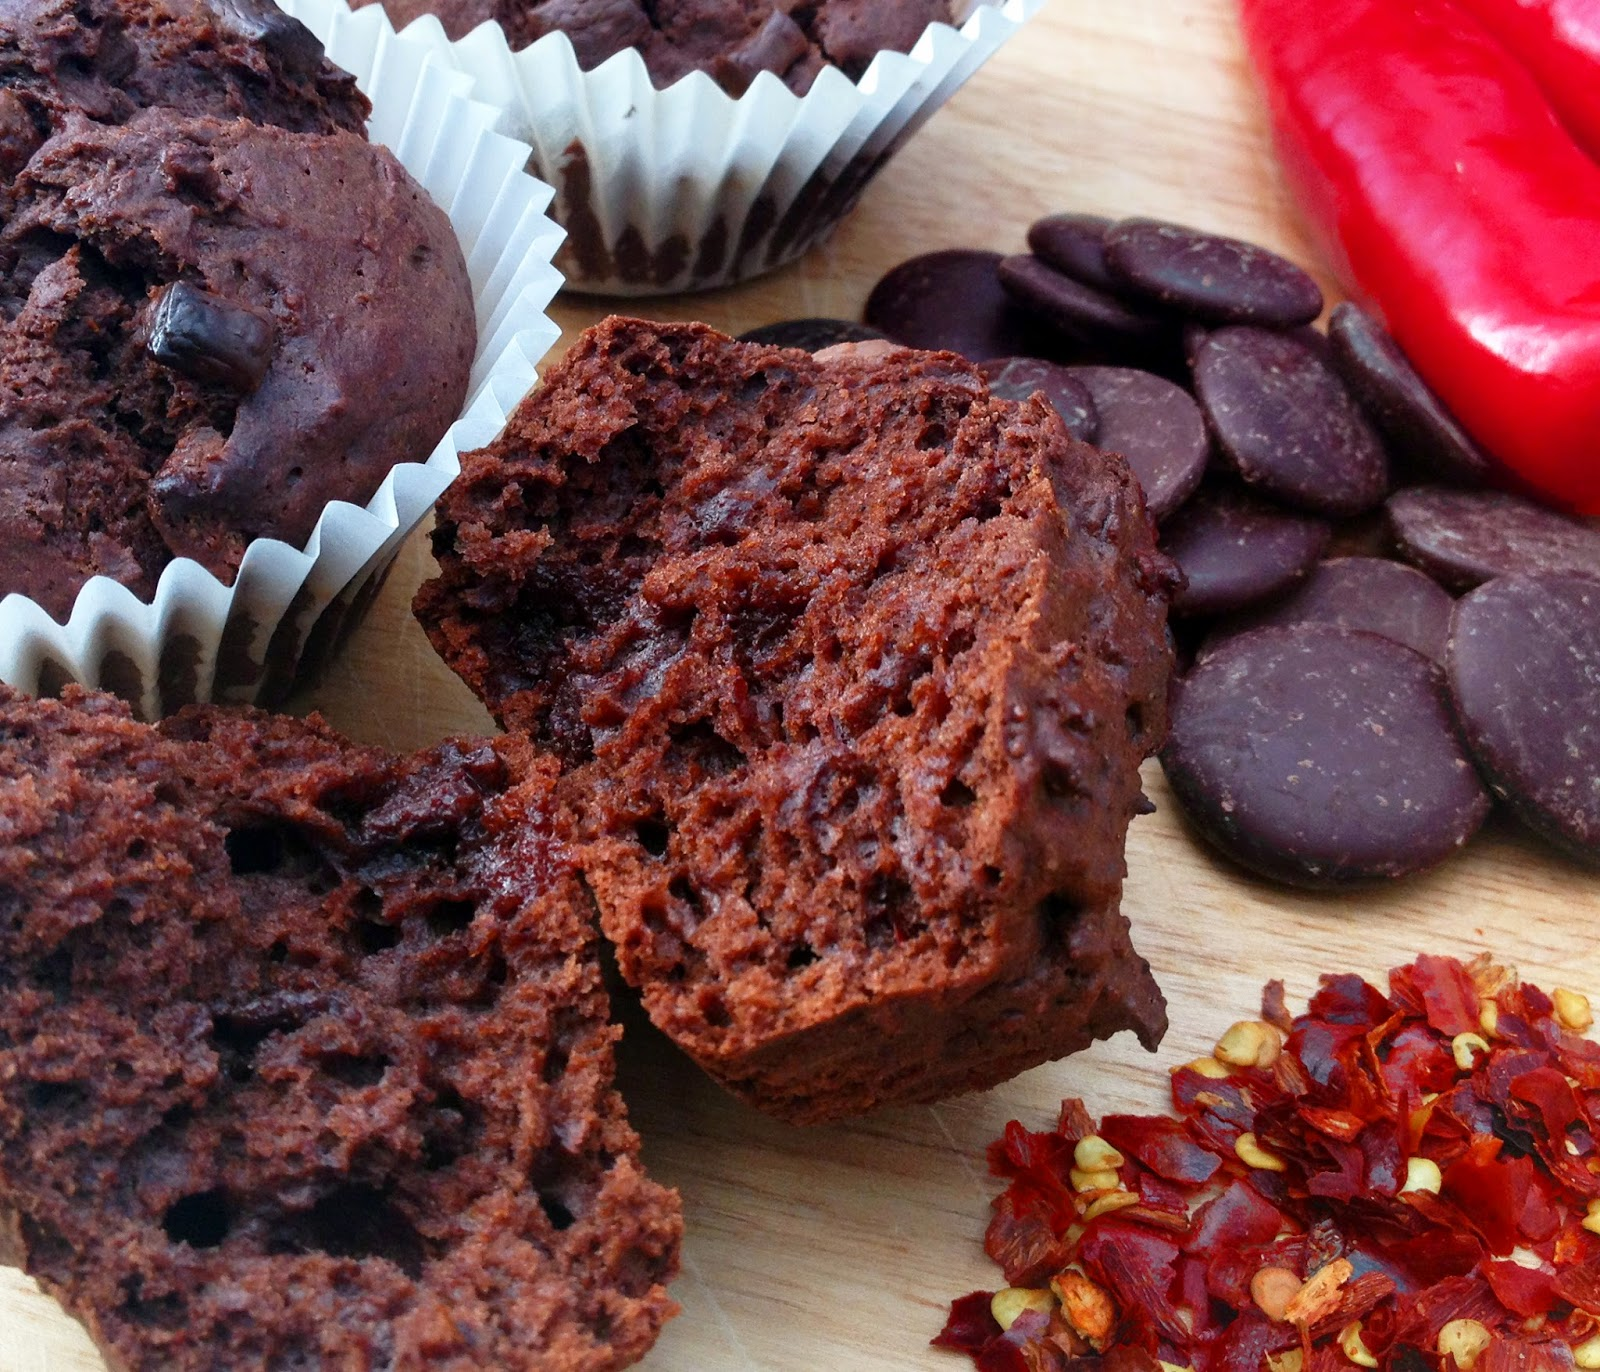 chilli chocolate muffins